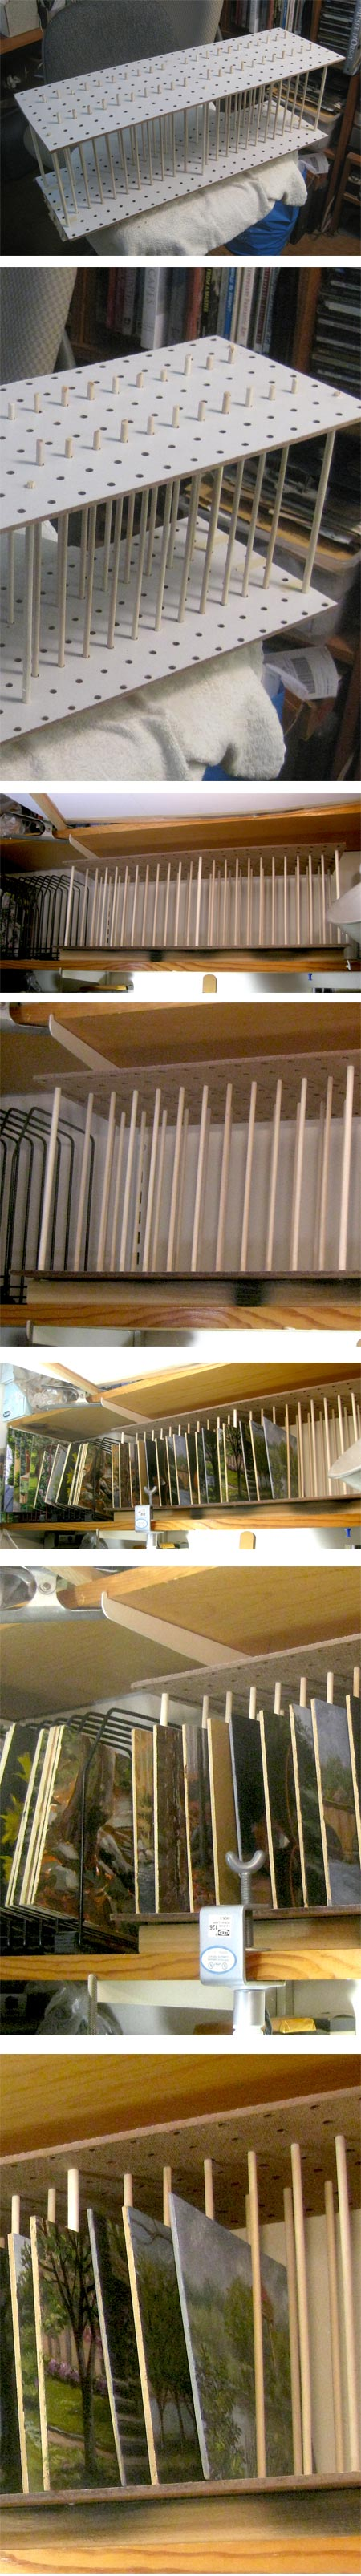 A simple DIY drying rack for plein air panels and small paintings